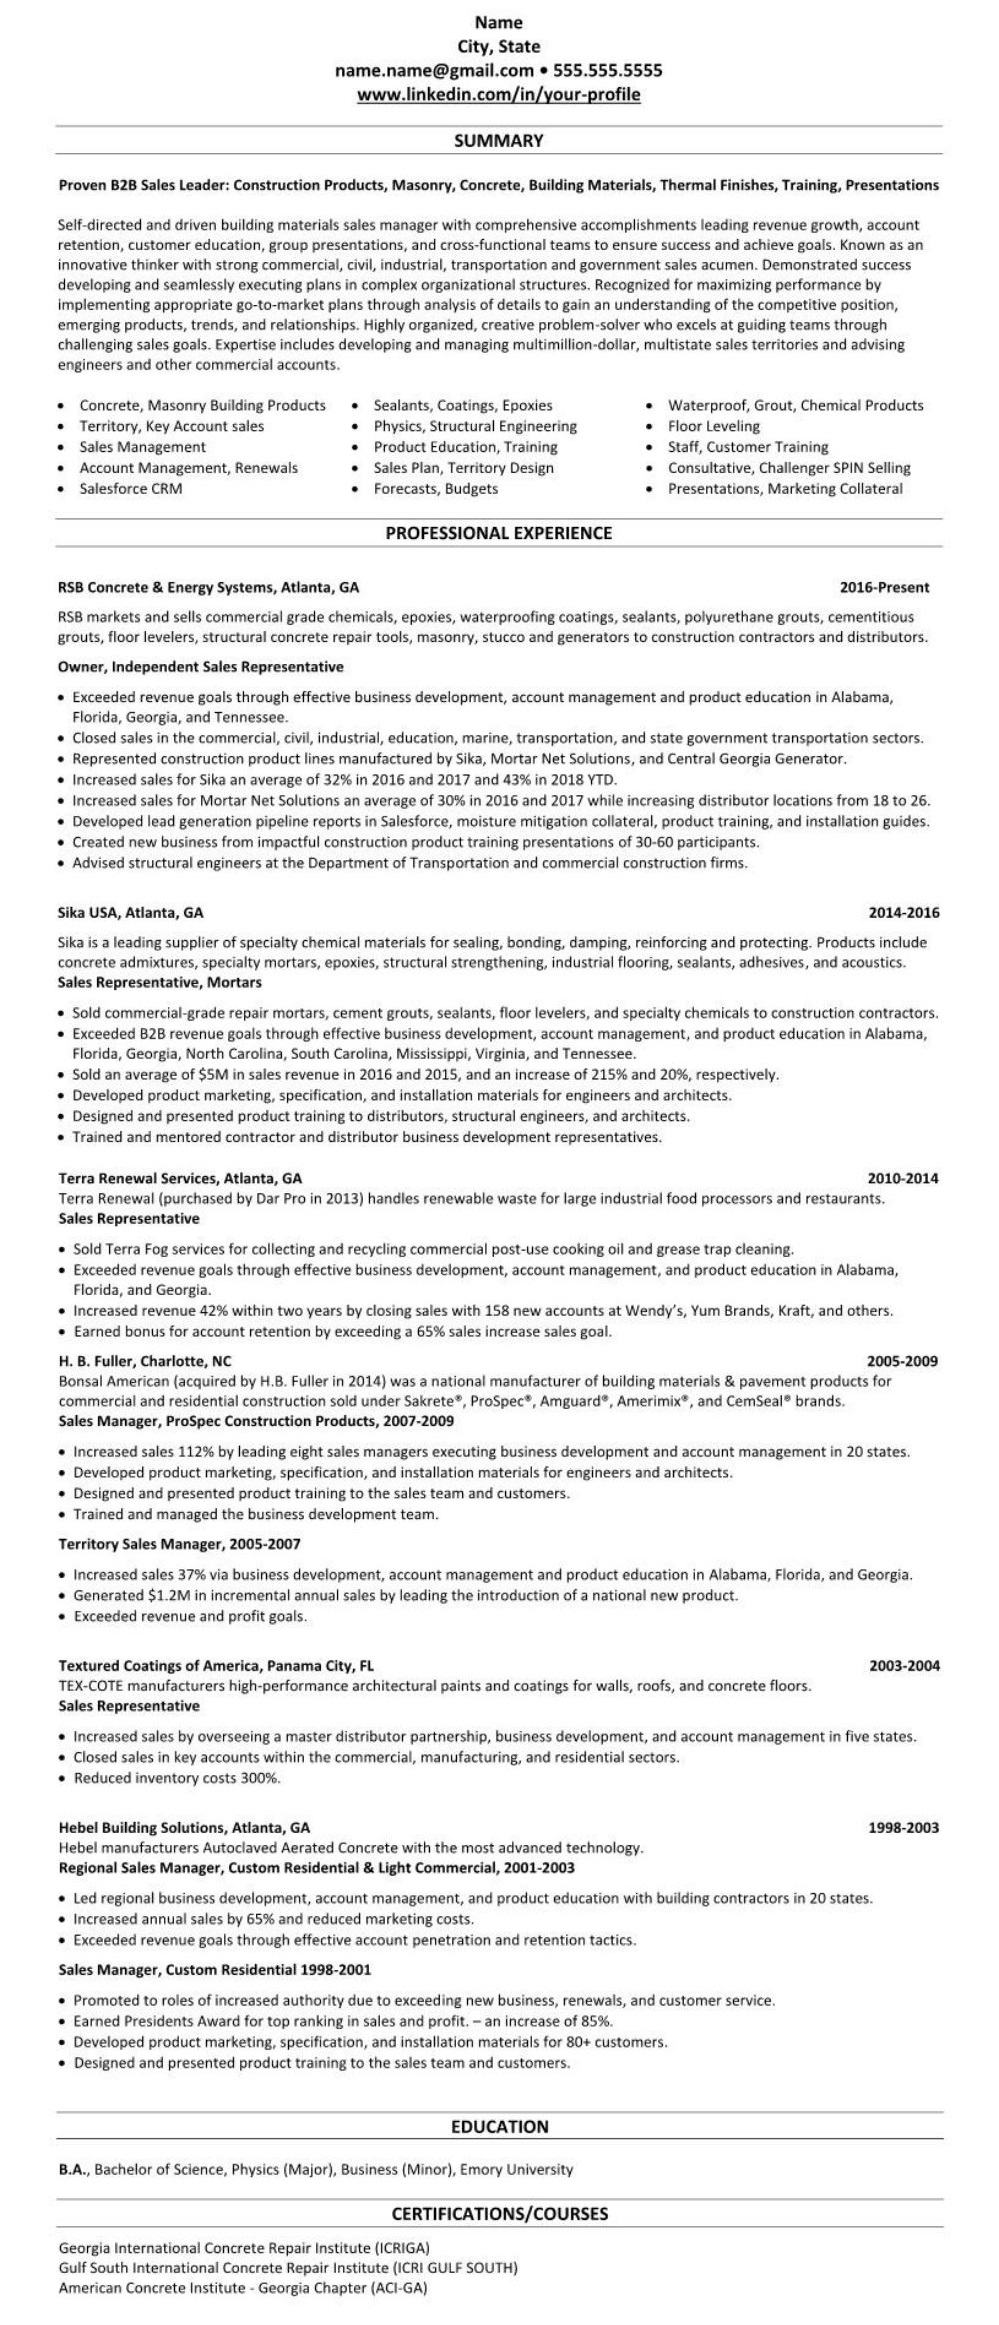 sample construction linkedin profile  u0026 resume  commercial